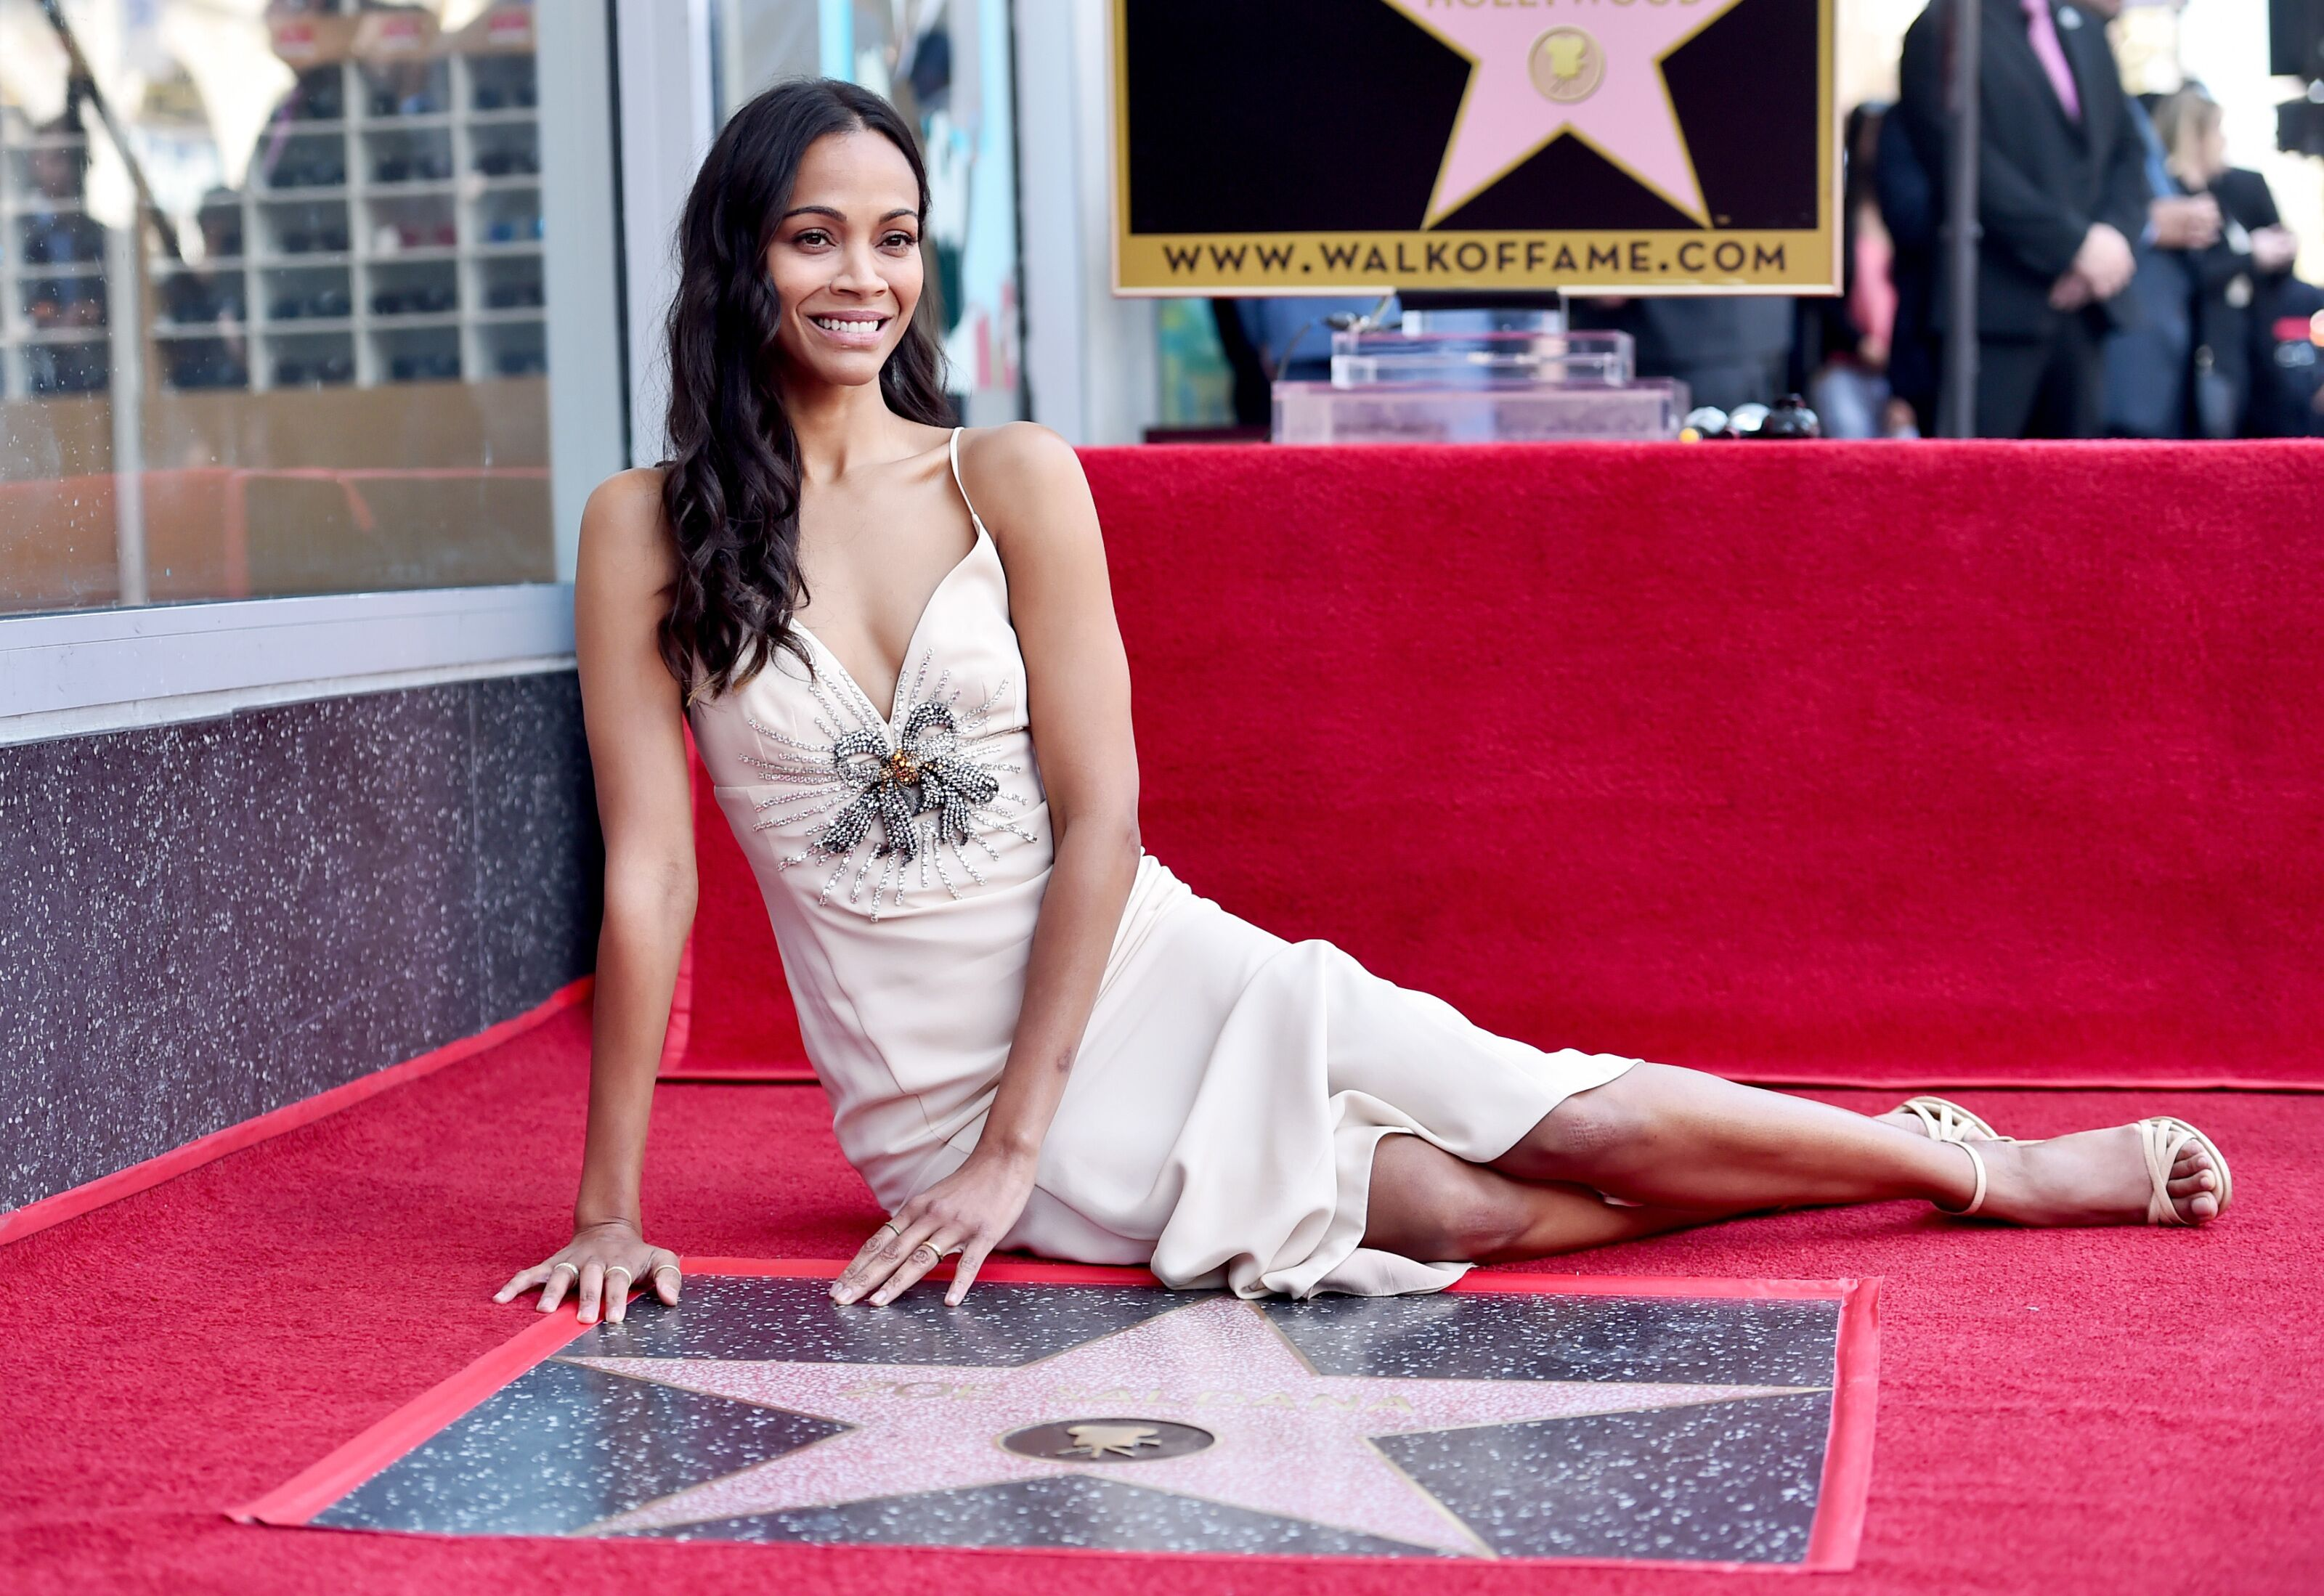 The 4 best Zoe Saldana movies to watch for her birthday